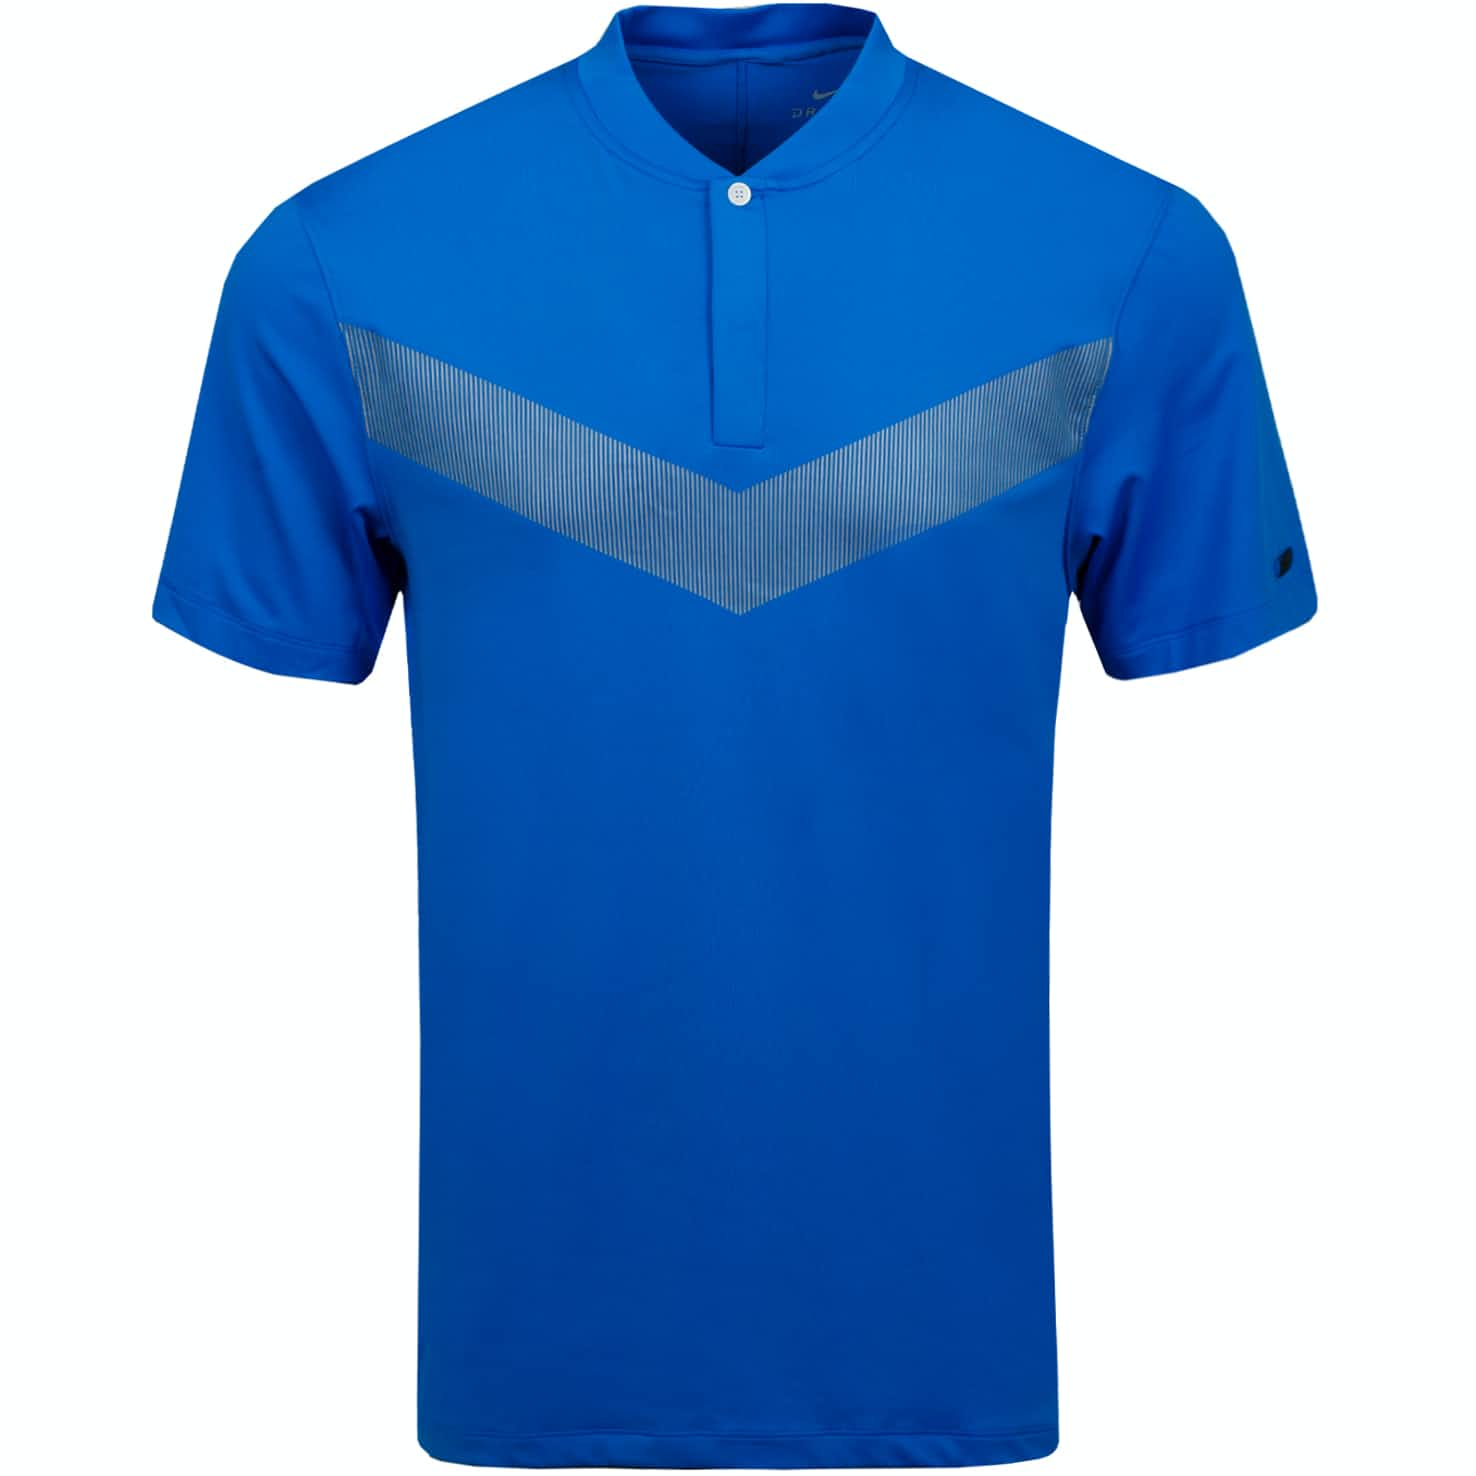 TW Dry Vapor Reflect Blade Polo Photo Blue/Black - AW19